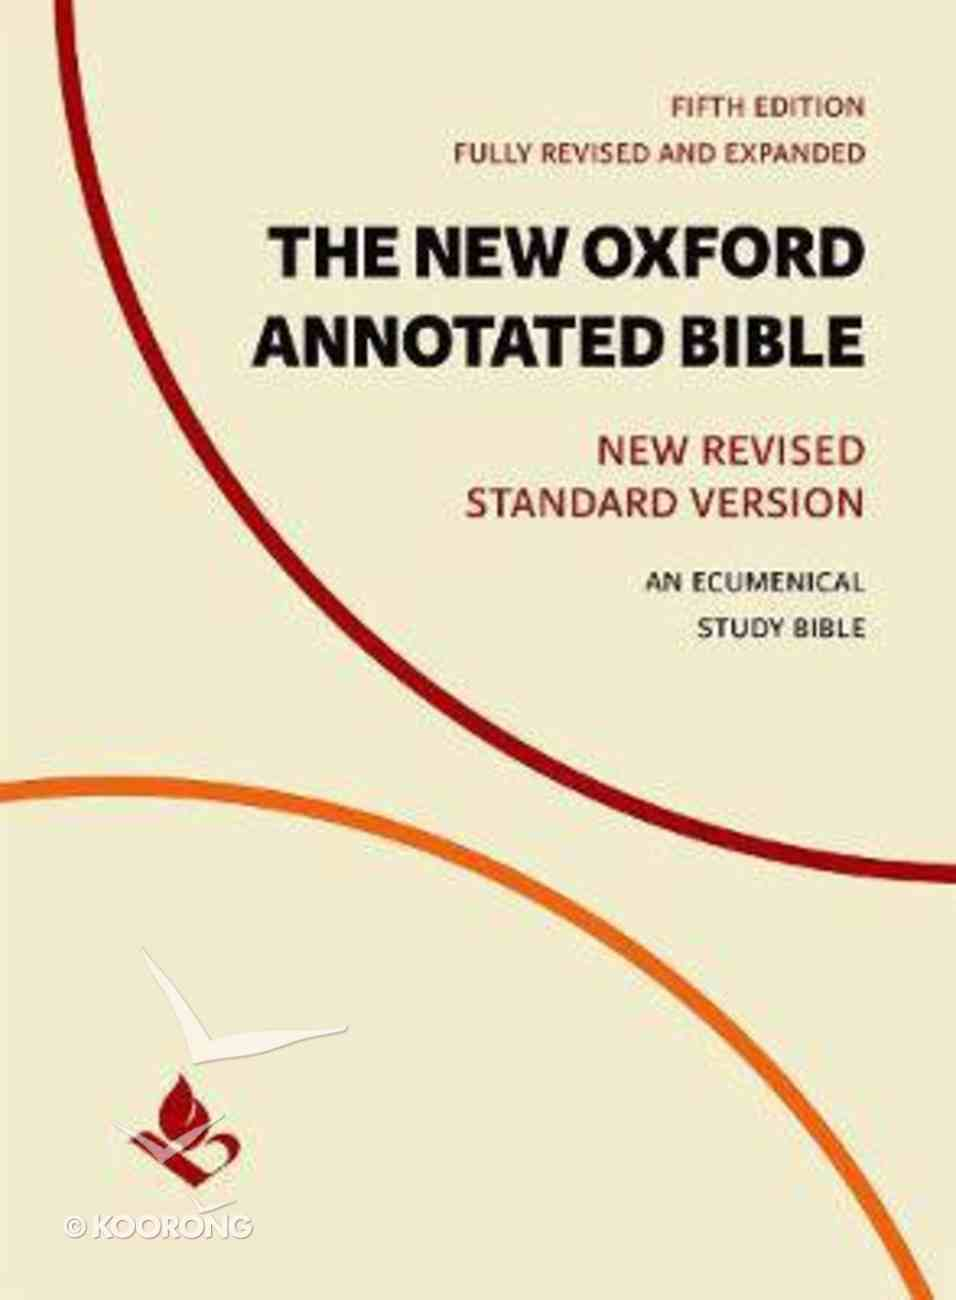 The NRSV New Oxford Annotated Bible (5th Edition) Hardback